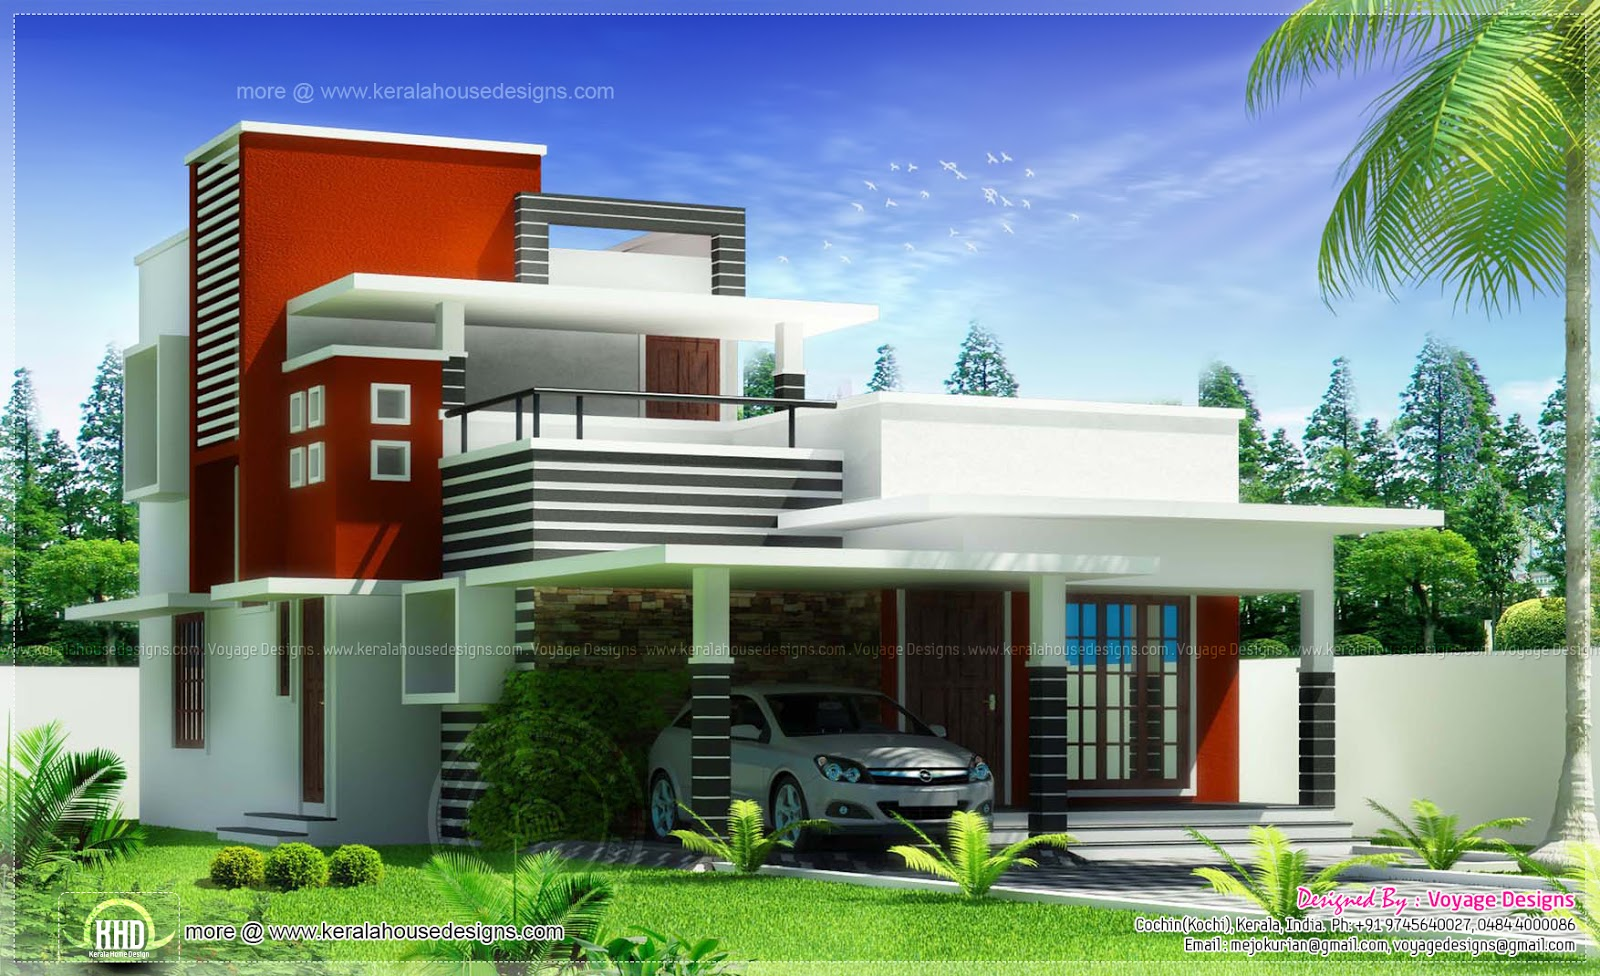 3 bed room contemporary style house kerala home design for Contemporary home plans 2015